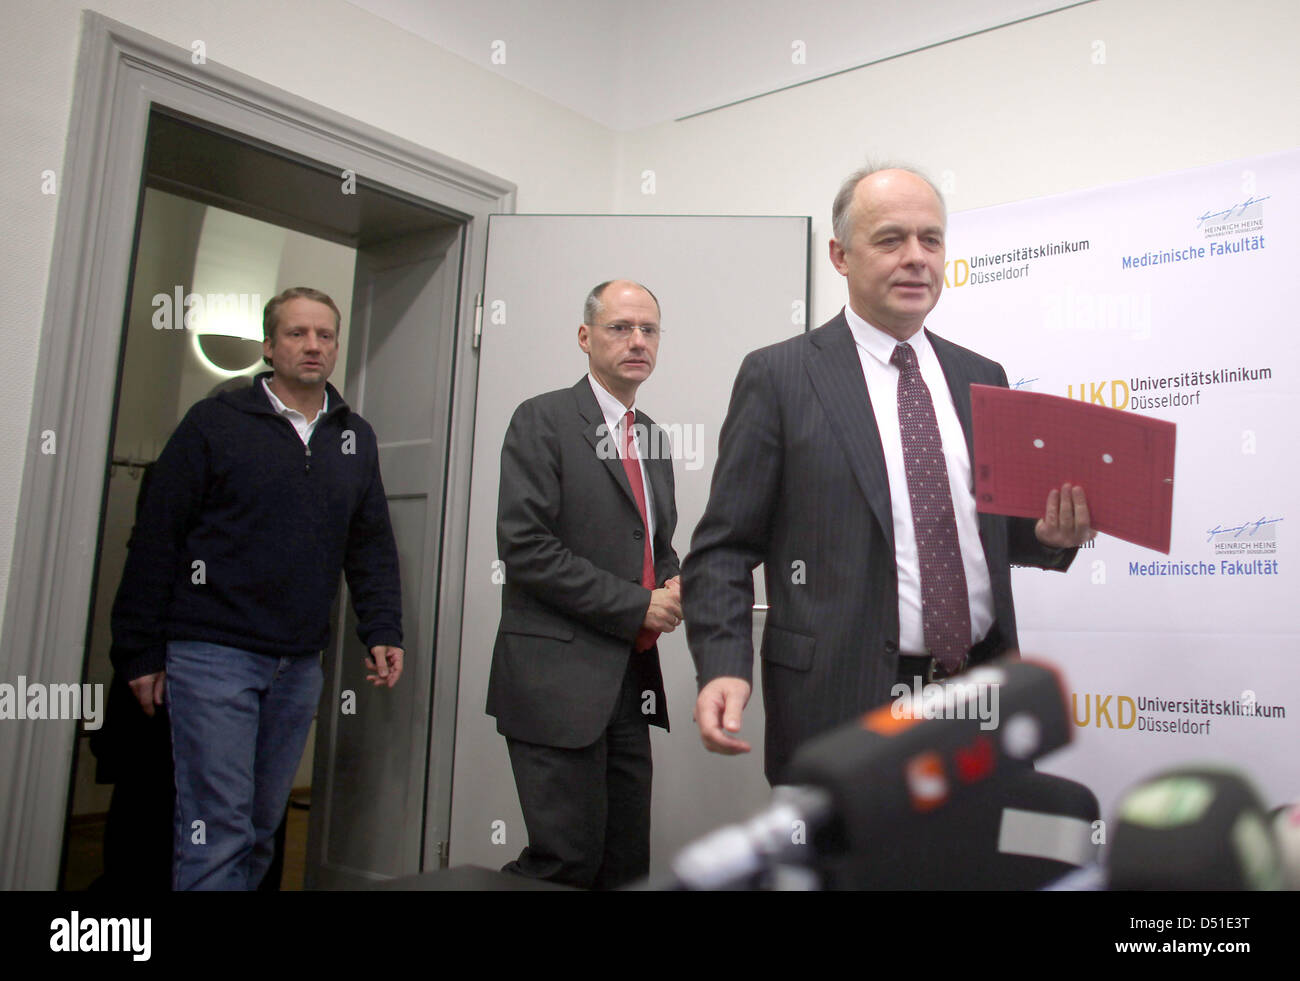 The medical director of the University Hospital, Wolfgang Raab (r) and the responsible doctors Richard Bostelmann - Stock Image